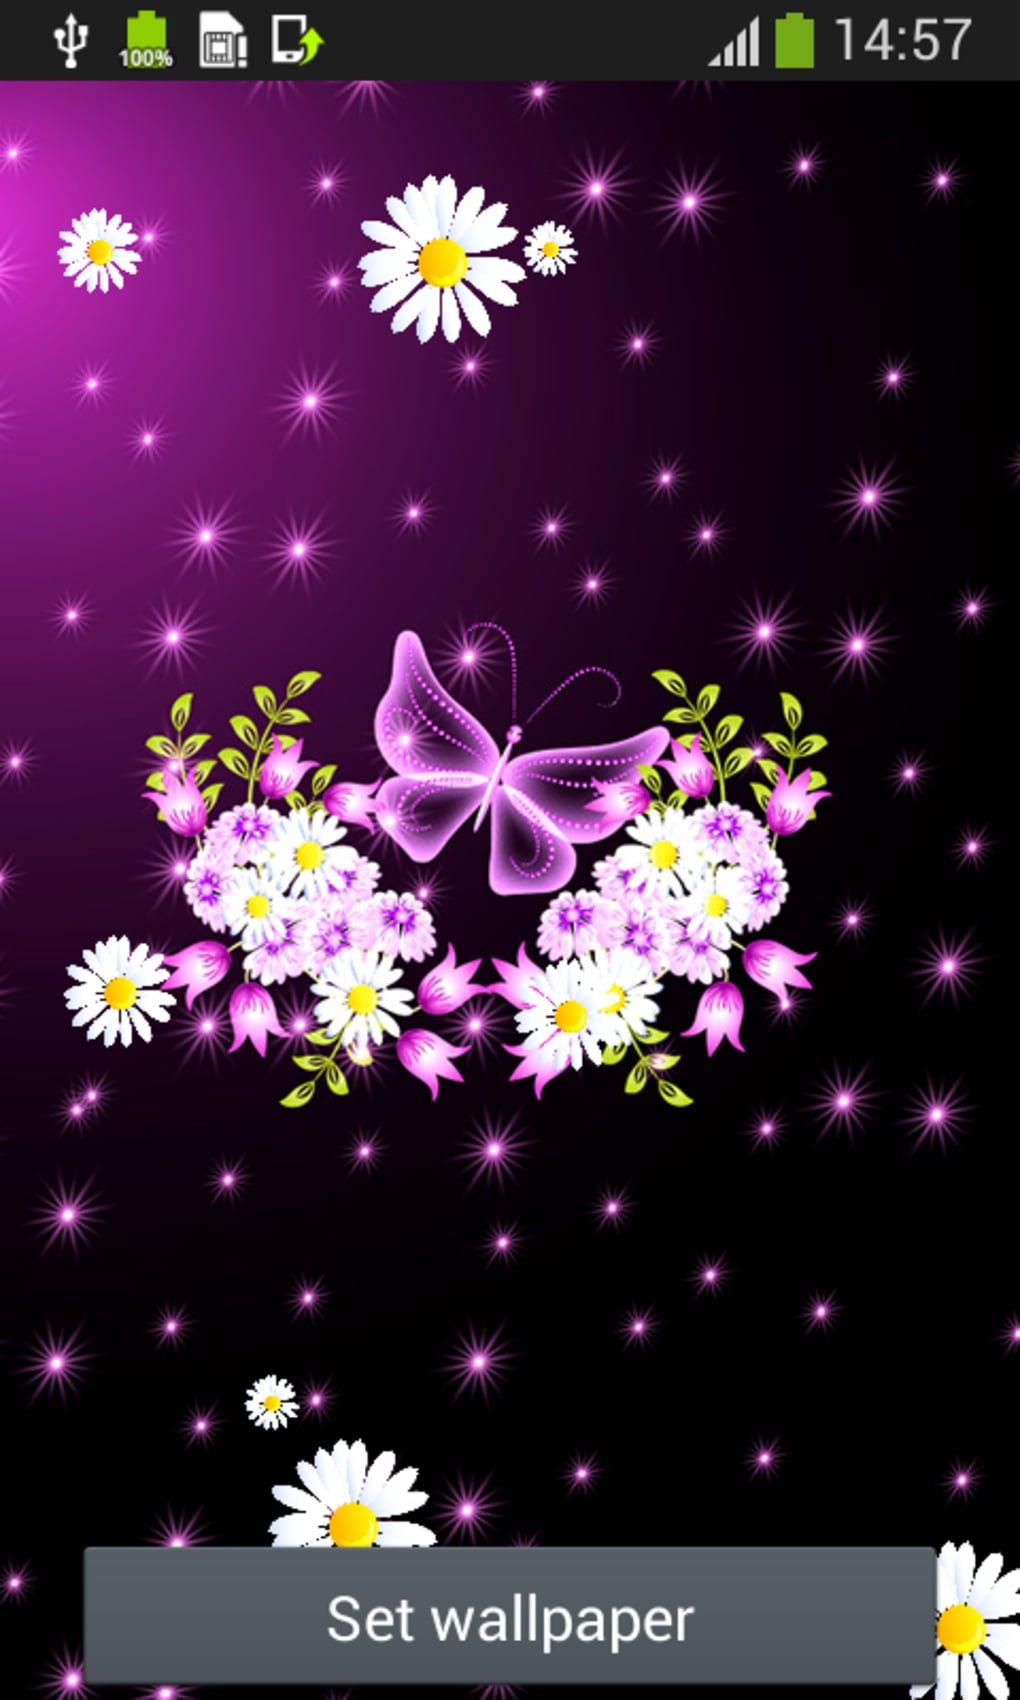 Butterfly Live Wallpapers Apk For Android Download